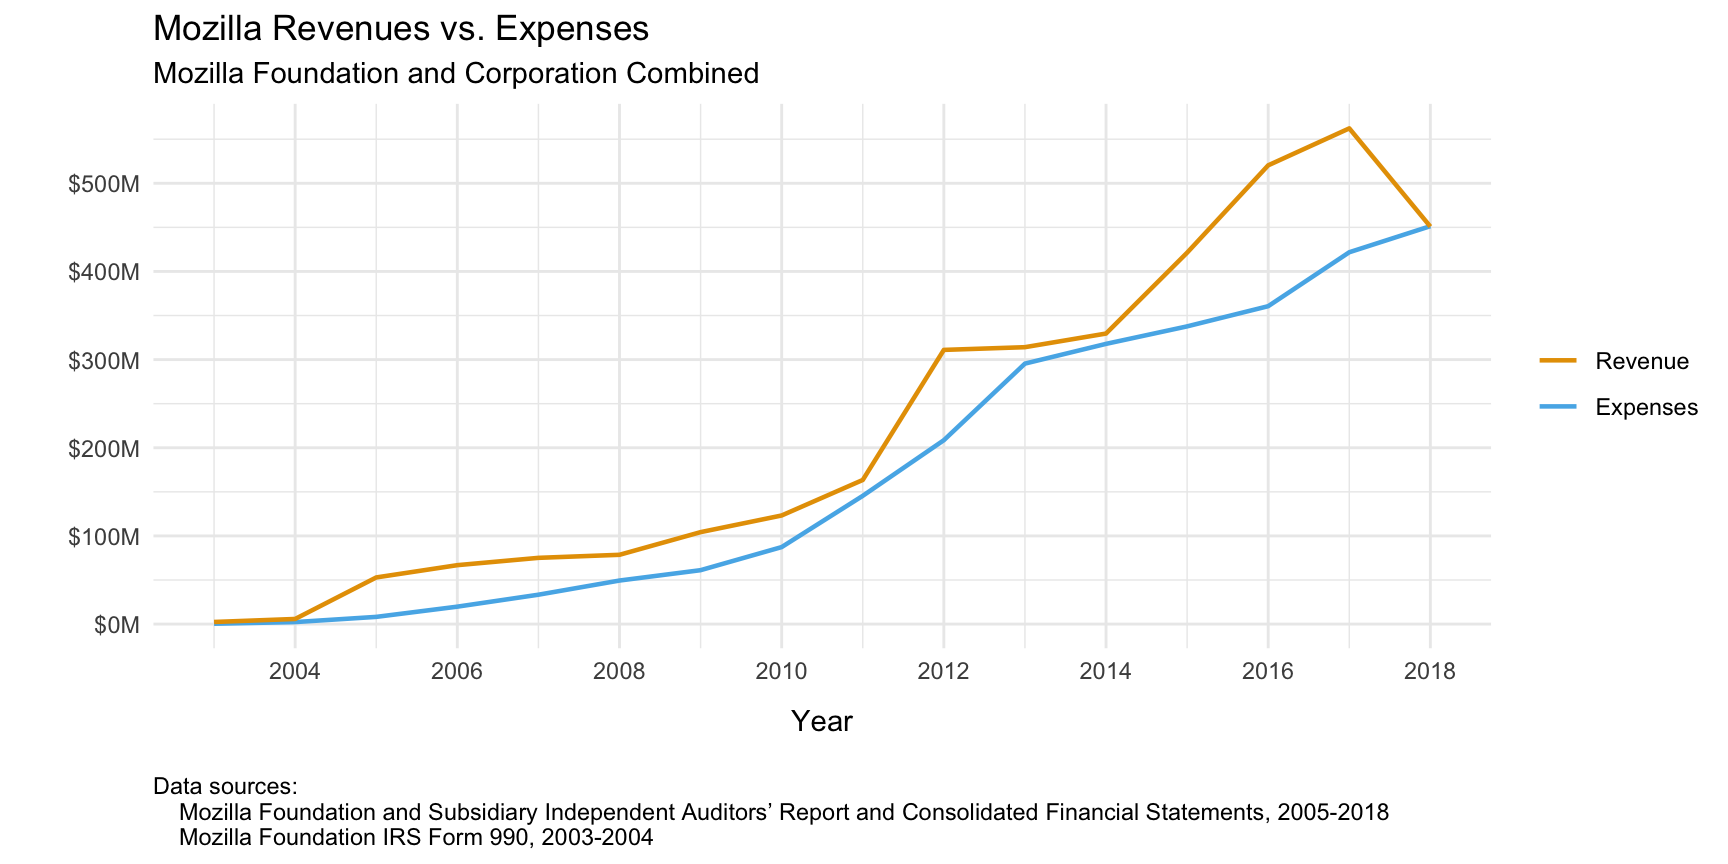 Graph of Mozilla revenues compared to expenses